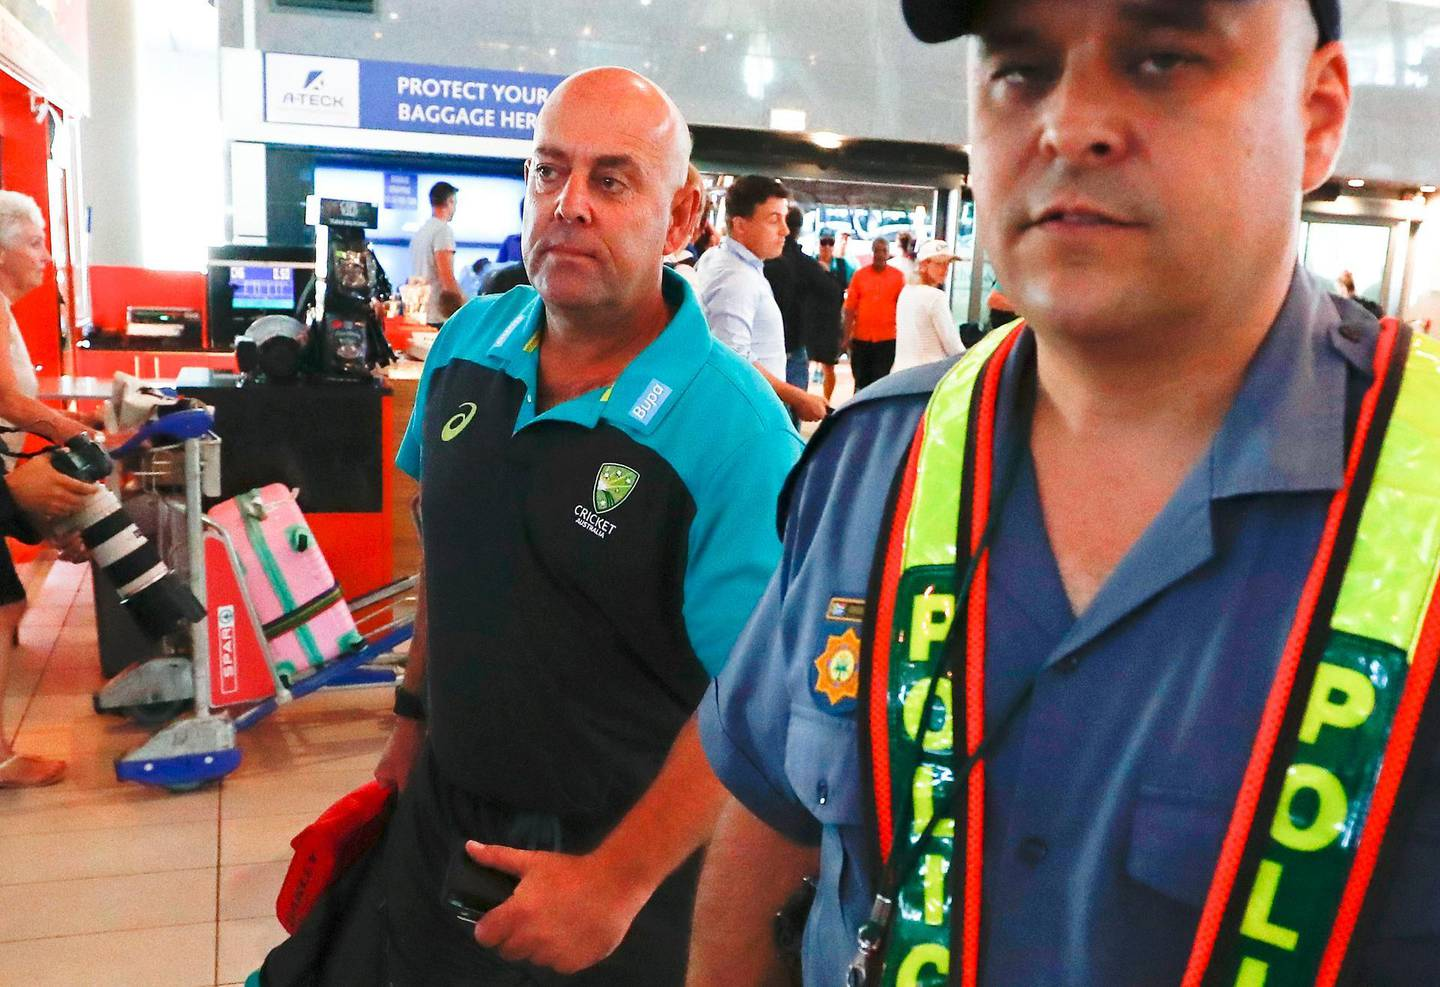 epa06631766 Australian cricket coach Darren Lehmann (L) departs from Cape Town International airport, South Africa, 27 March 2018. Australia skipper Steve Smith has been suspended by the International Cricket Council (ICC) for his part in a ball tampering scandal during the third test against South Africa. Smith admitted some senior players were aware of the ball tampering attempt. Smith and David Warner stepped down as captain and vice-captain of the Australian team in consequence to the ball meddling scandal.  EPA/NIC BOTHMA